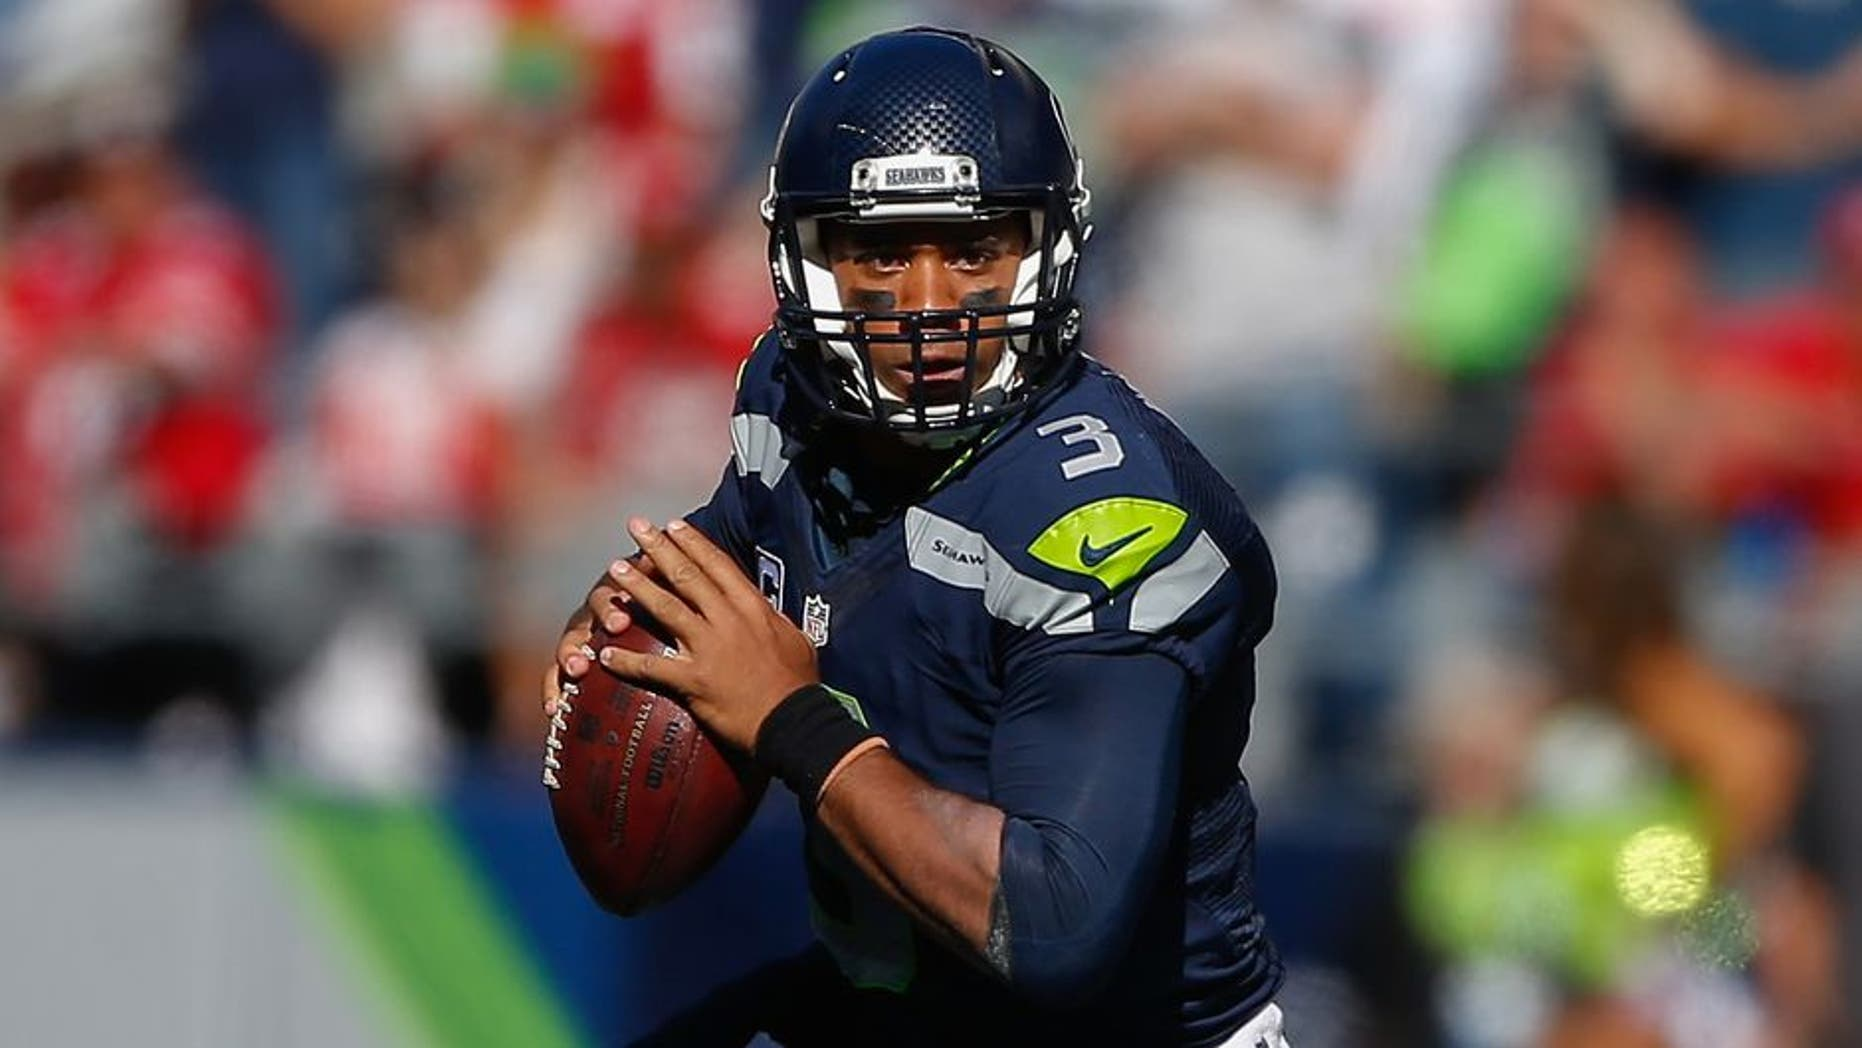 SEATTLE, WA - SEPTEMBER 25: Quarterback Russell Wilson #3 of the Seattle Seahawks rushes against the San Francisco 49ers at CenturyLink Field on September 25, 2016 in Seattle, Washington. The Seahawks defeated the 49ers 37-18. (Photo by Otto Greule Jr/Getty Images)